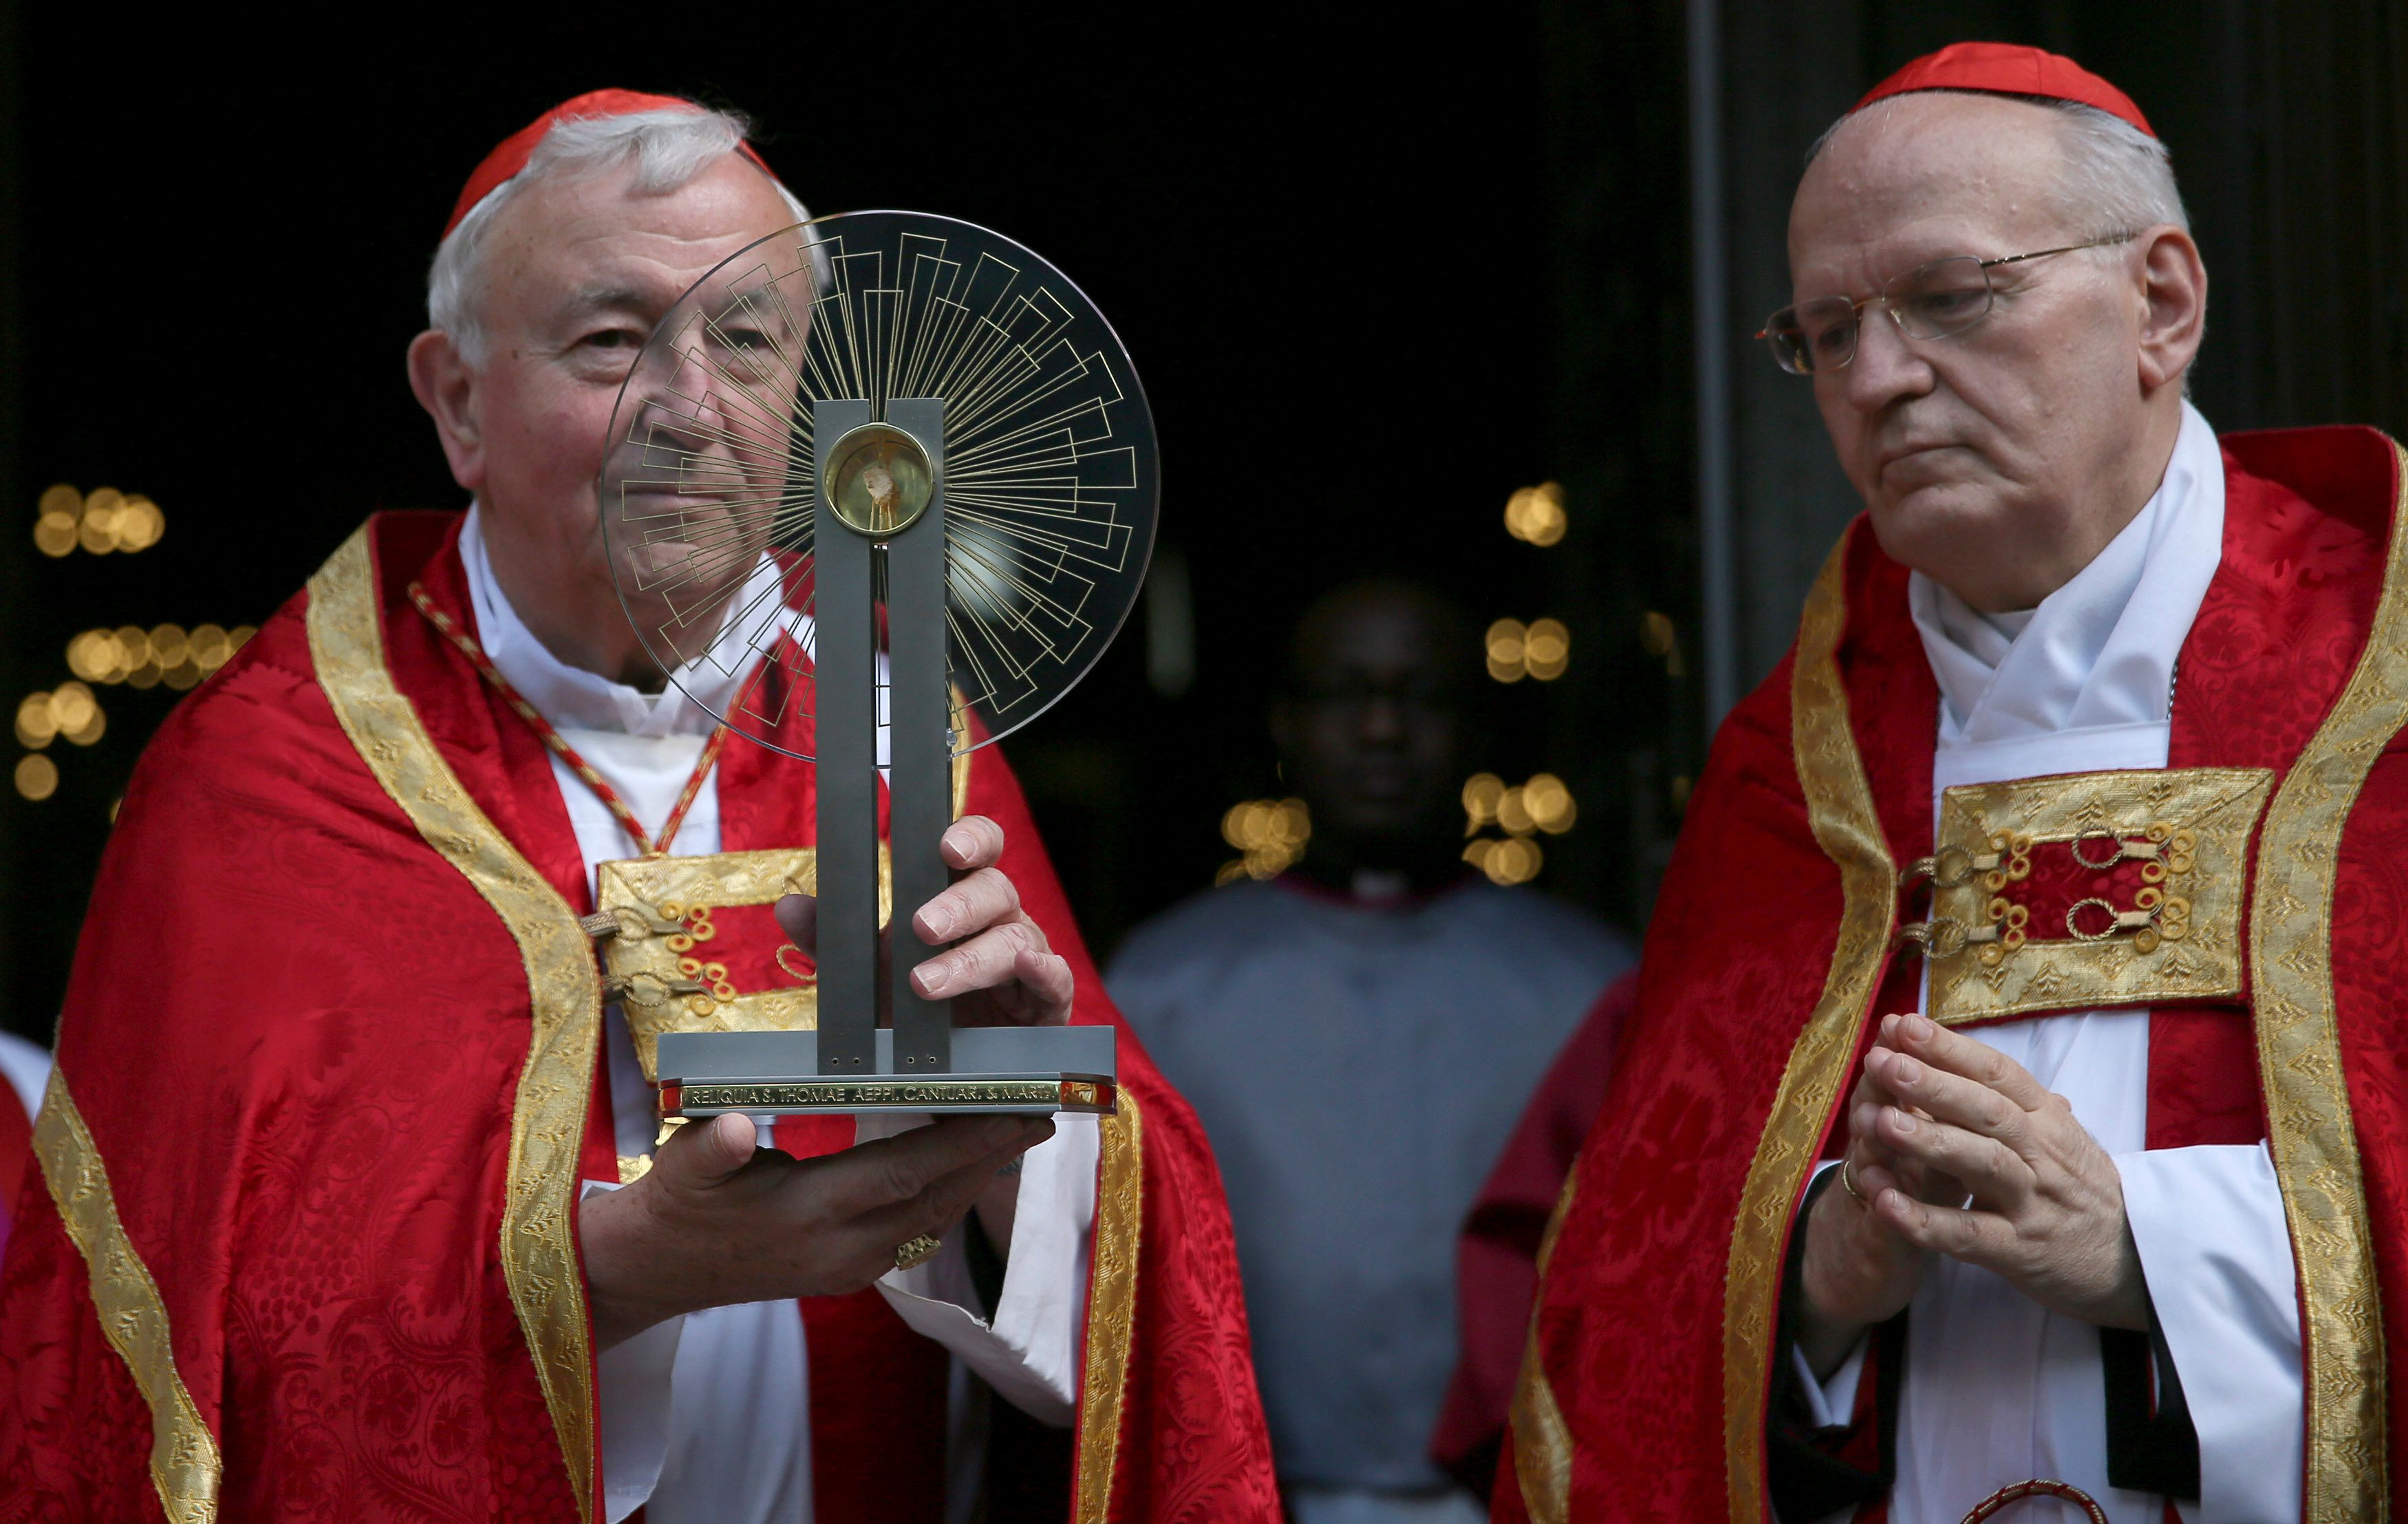 Archbishop of Westminster Cardinal Vincent Nicolls (L) receives the Hungarian relic of St Thomas a Becket from  Archbishop of Esztergom-Budapest Cardinal Peter Erdo before a ceremony at Westminster Cathedral in London, Britain May 23, 2016. REUTERS/Neil Hall